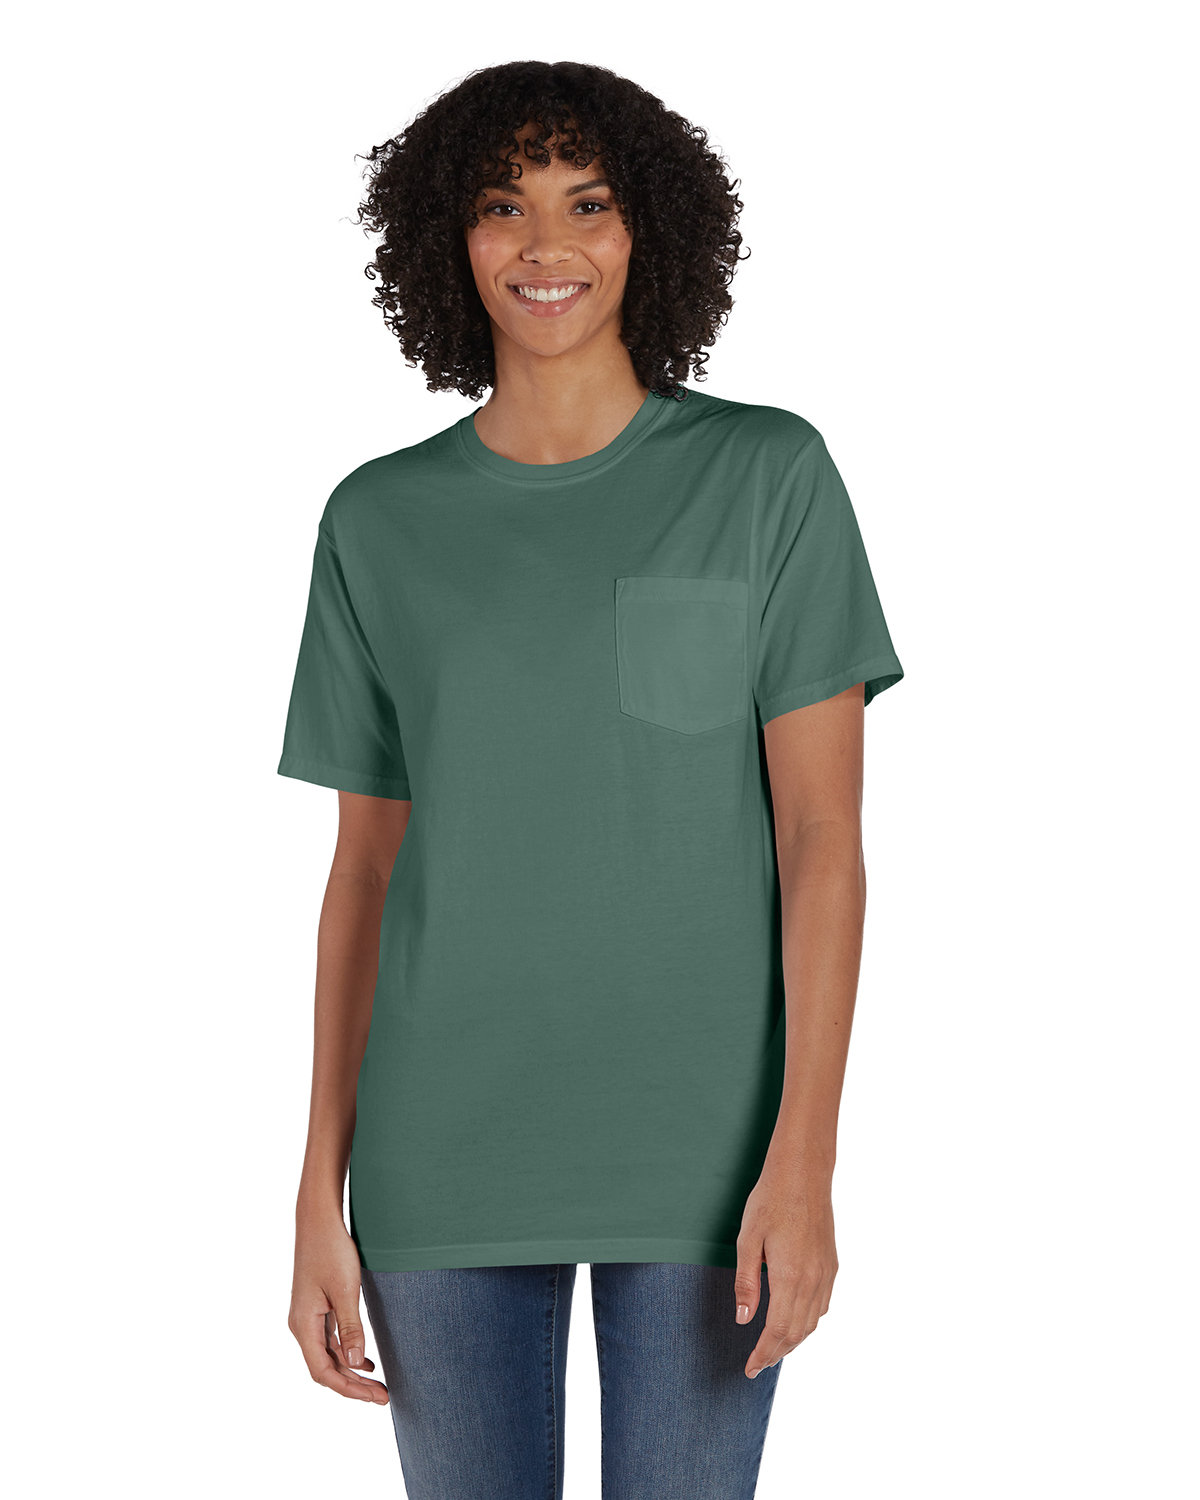 ComfortWash by Hanes Unisex 5.5 oz., 100% Ringspun Cotton Garment-Dyed T-Shirt with Pocket CYPRESS GREEN